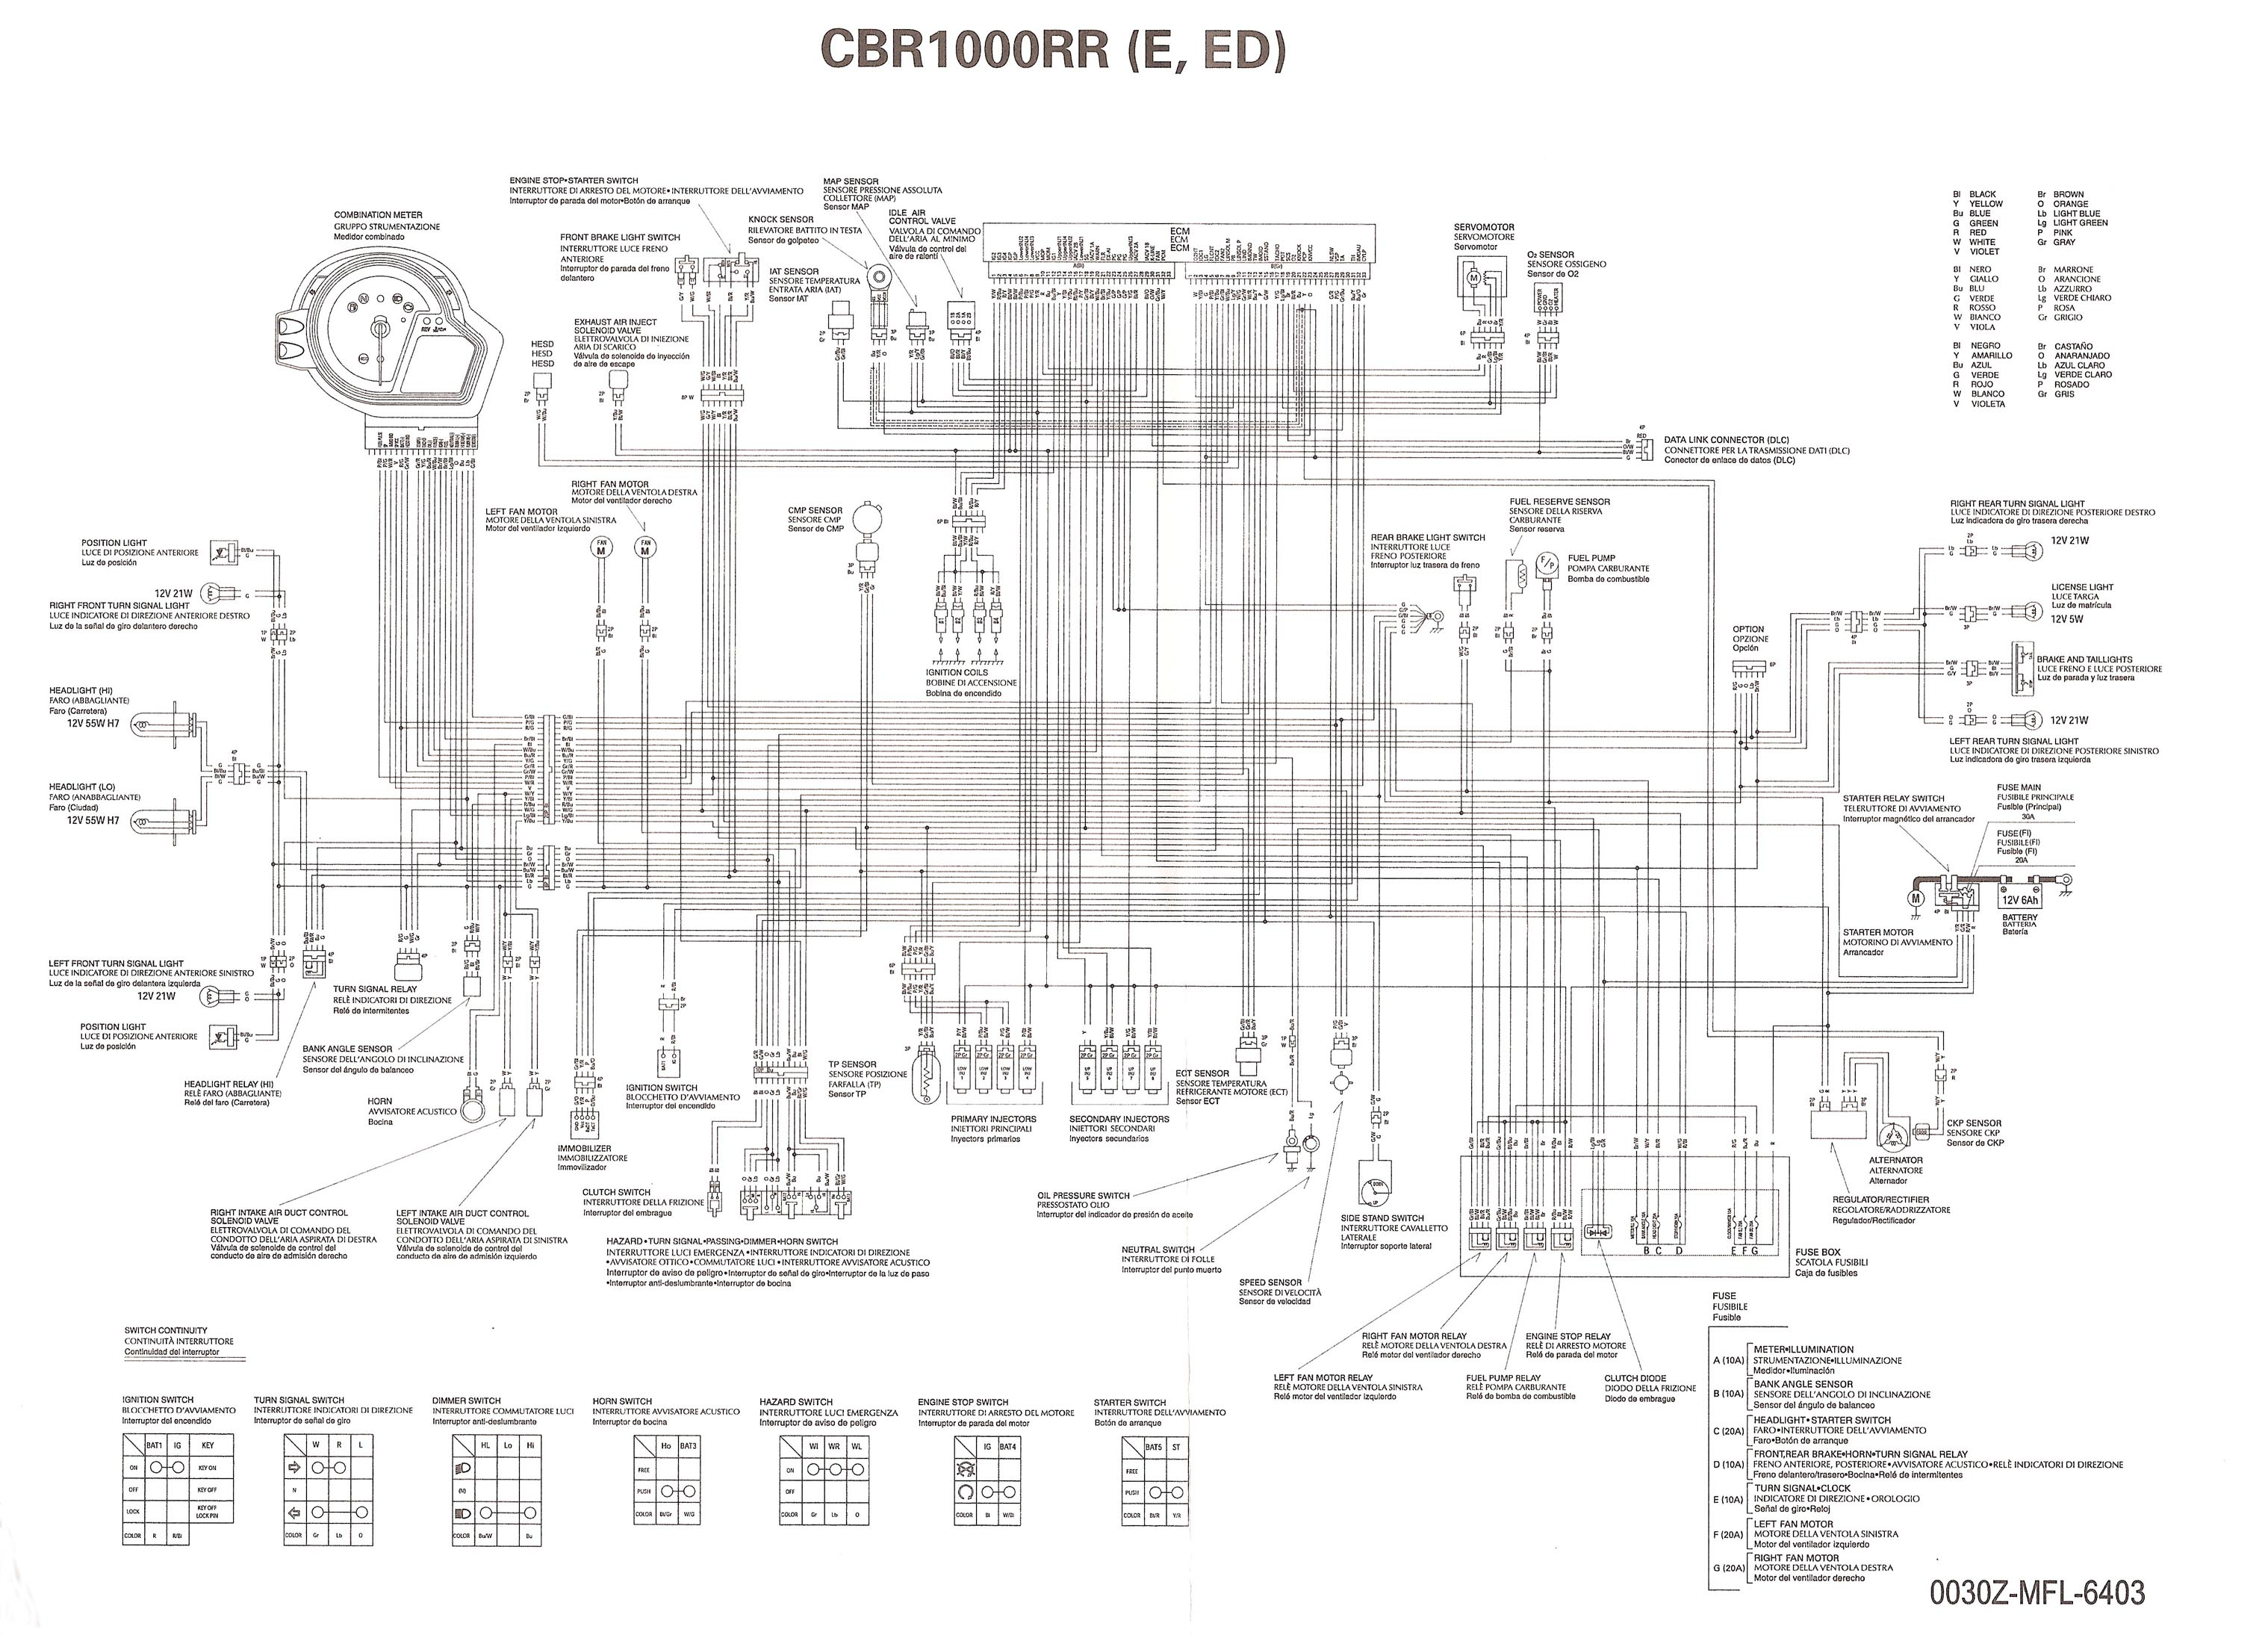 hight resolution of 2000 jeep cherokee fuel pump wiring diagram together with 2007 chrysler sebring fuse